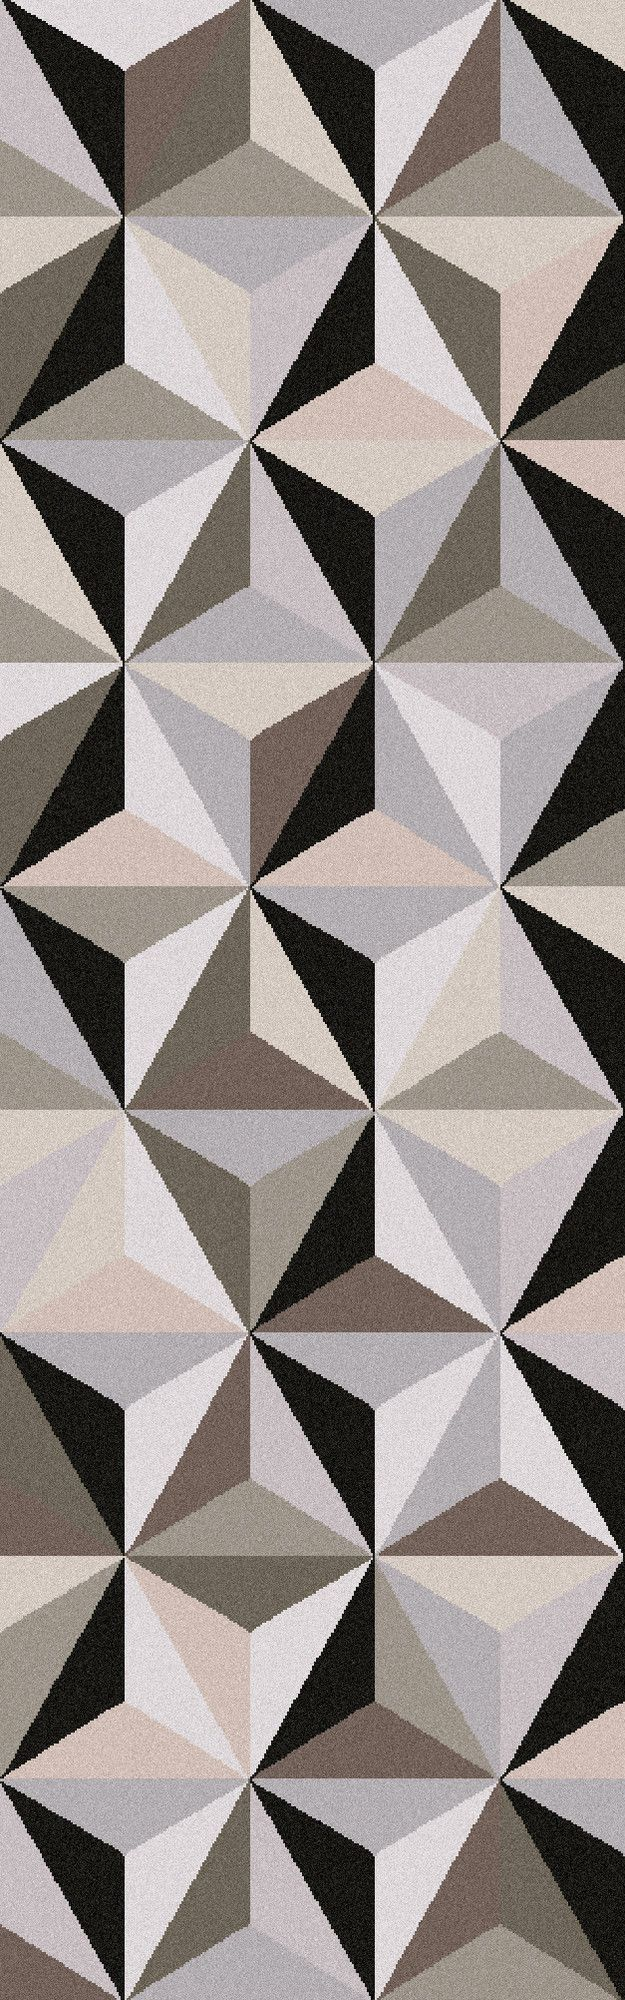 The formation of triangles and different shade work together and create cube like shapes across the screen.